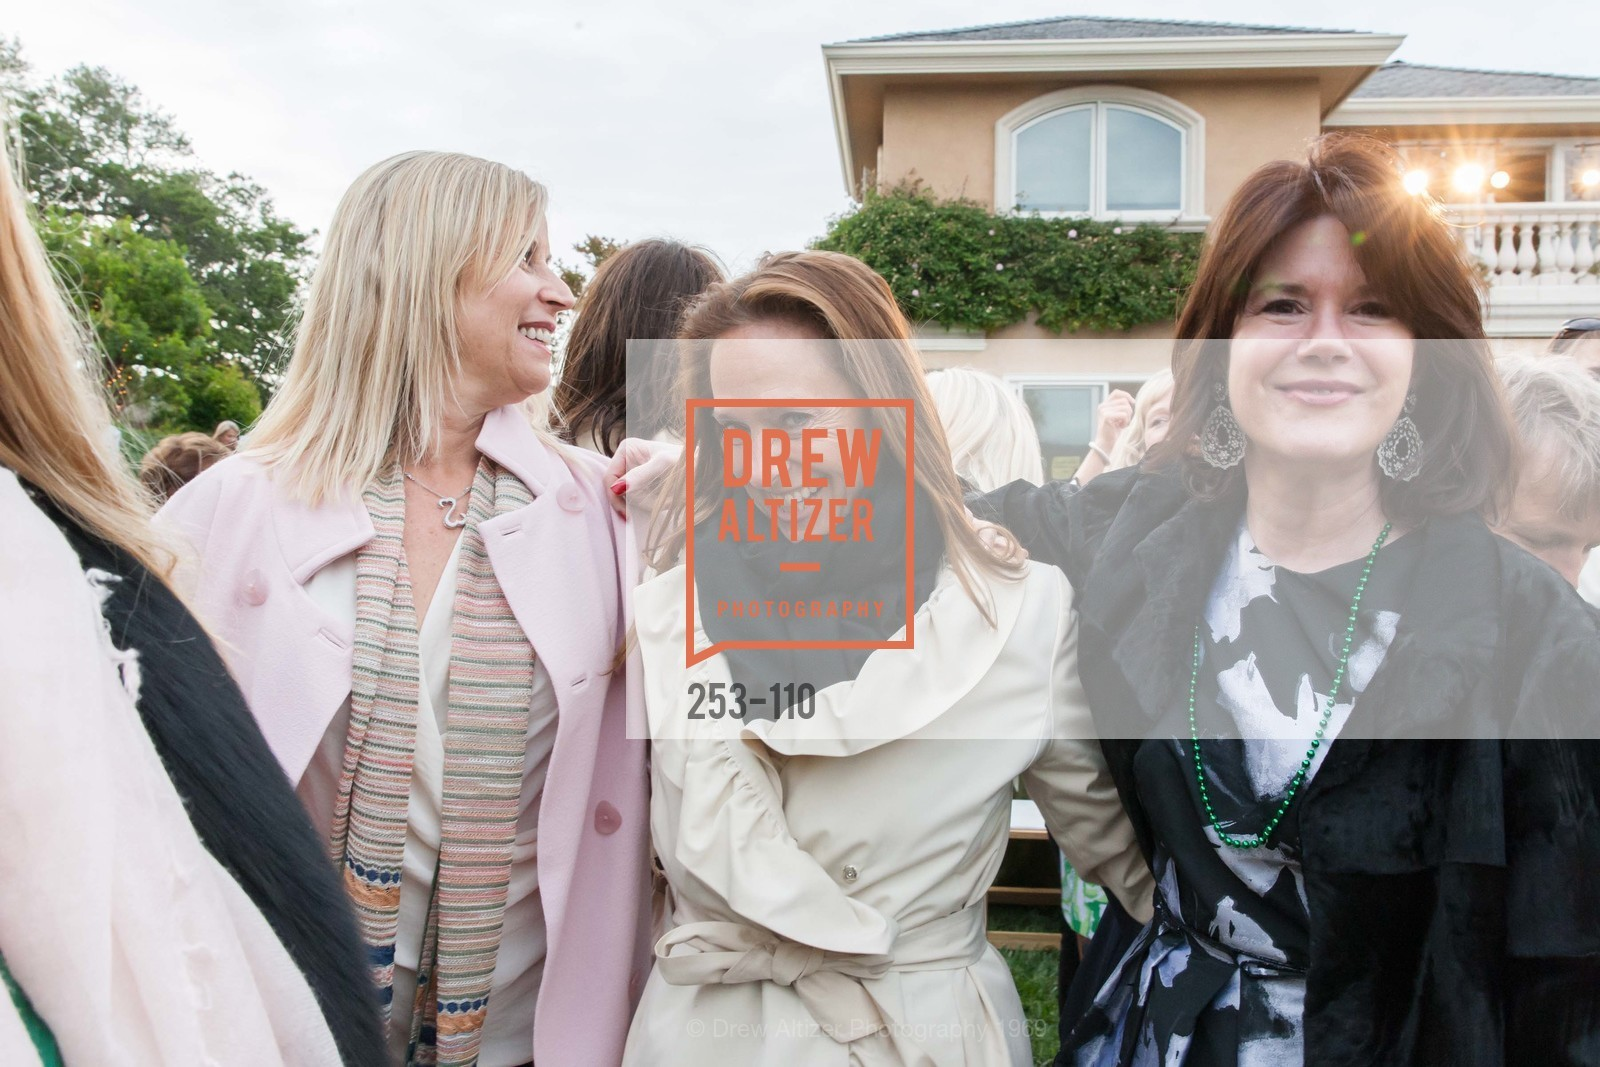 Jane Inch, Elisabeth Thieriot, Elaine Mellis, LYME AID 2015 Benefiting the Bay Area Lyme Foundation, Private Residence, May 16th, 2015,Drew Altizer, Drew Altizer Photography, full-service agency, private events, San Francisco photographer, photographer california